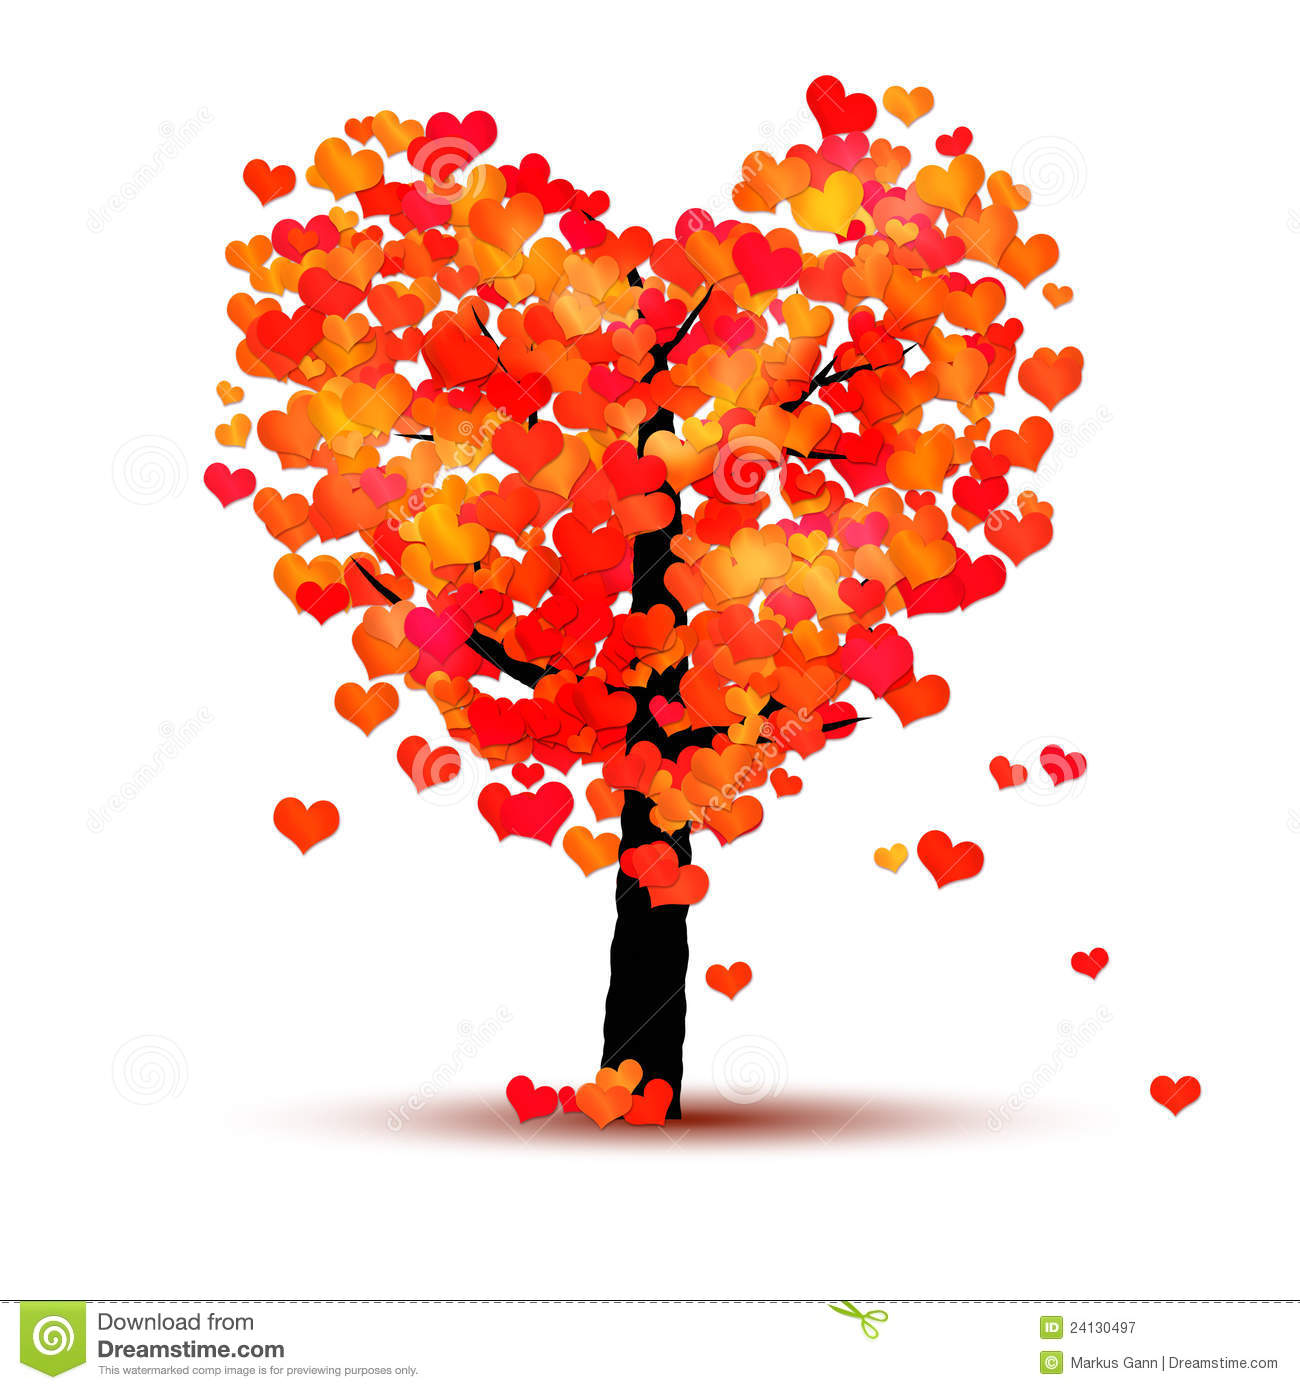 Clipart hearts in tree jpg freeuse stock Heart Tree Clipart - Clipart Kid jpg freeuse stock